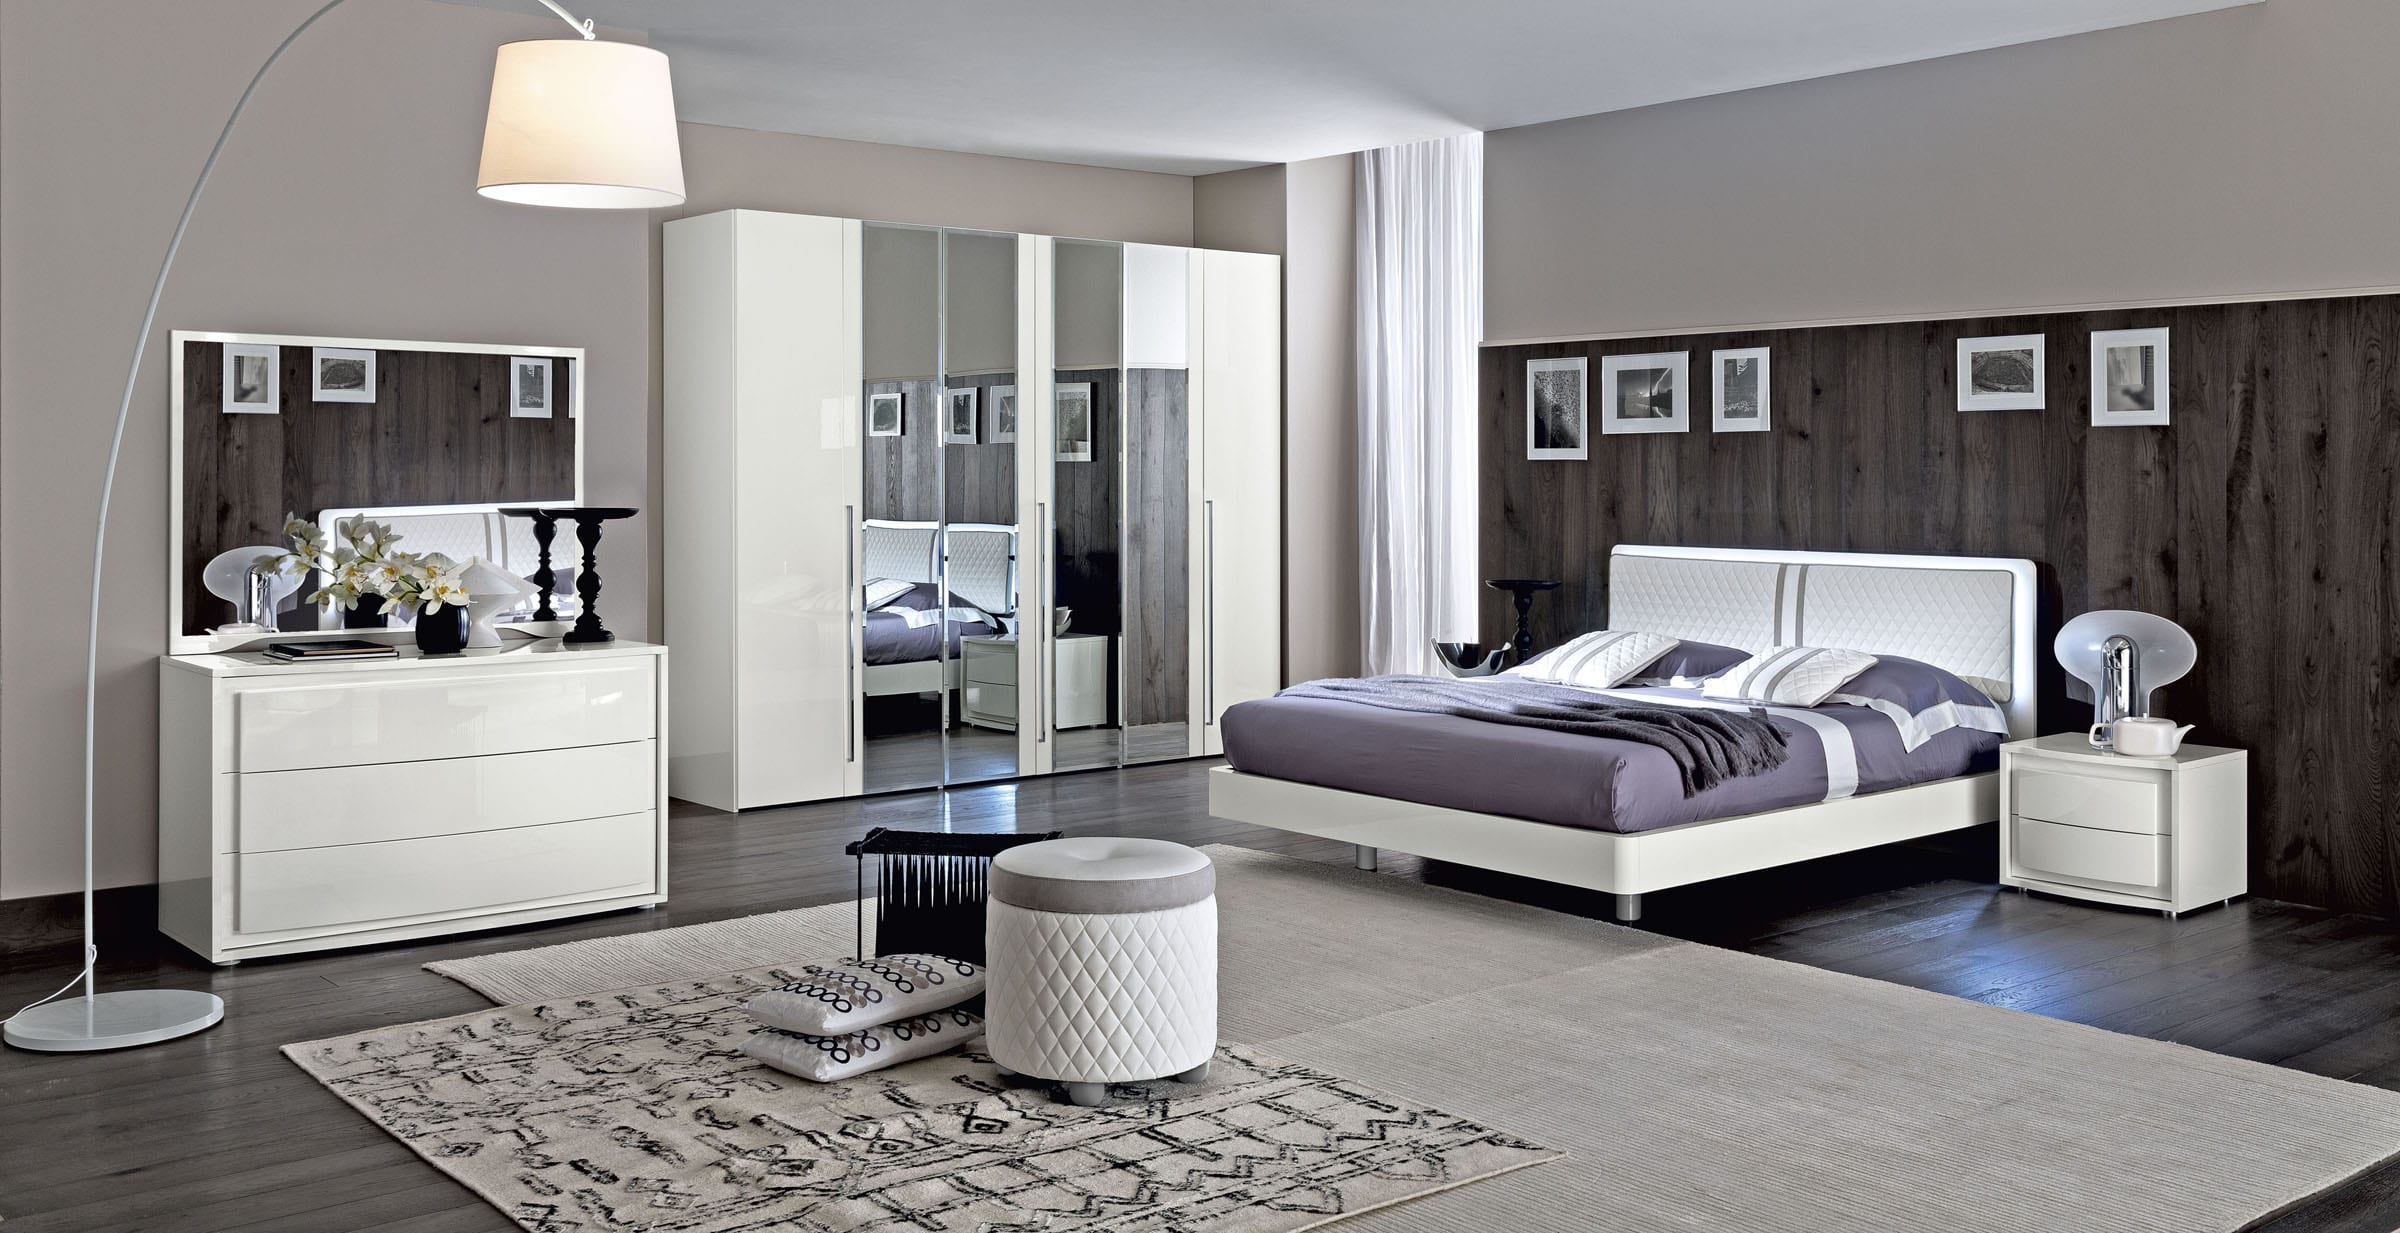 luxus schlafzimmer set spektakul re m belst cke von. Black Bedroom Furniture Sets. Home Design Ideas